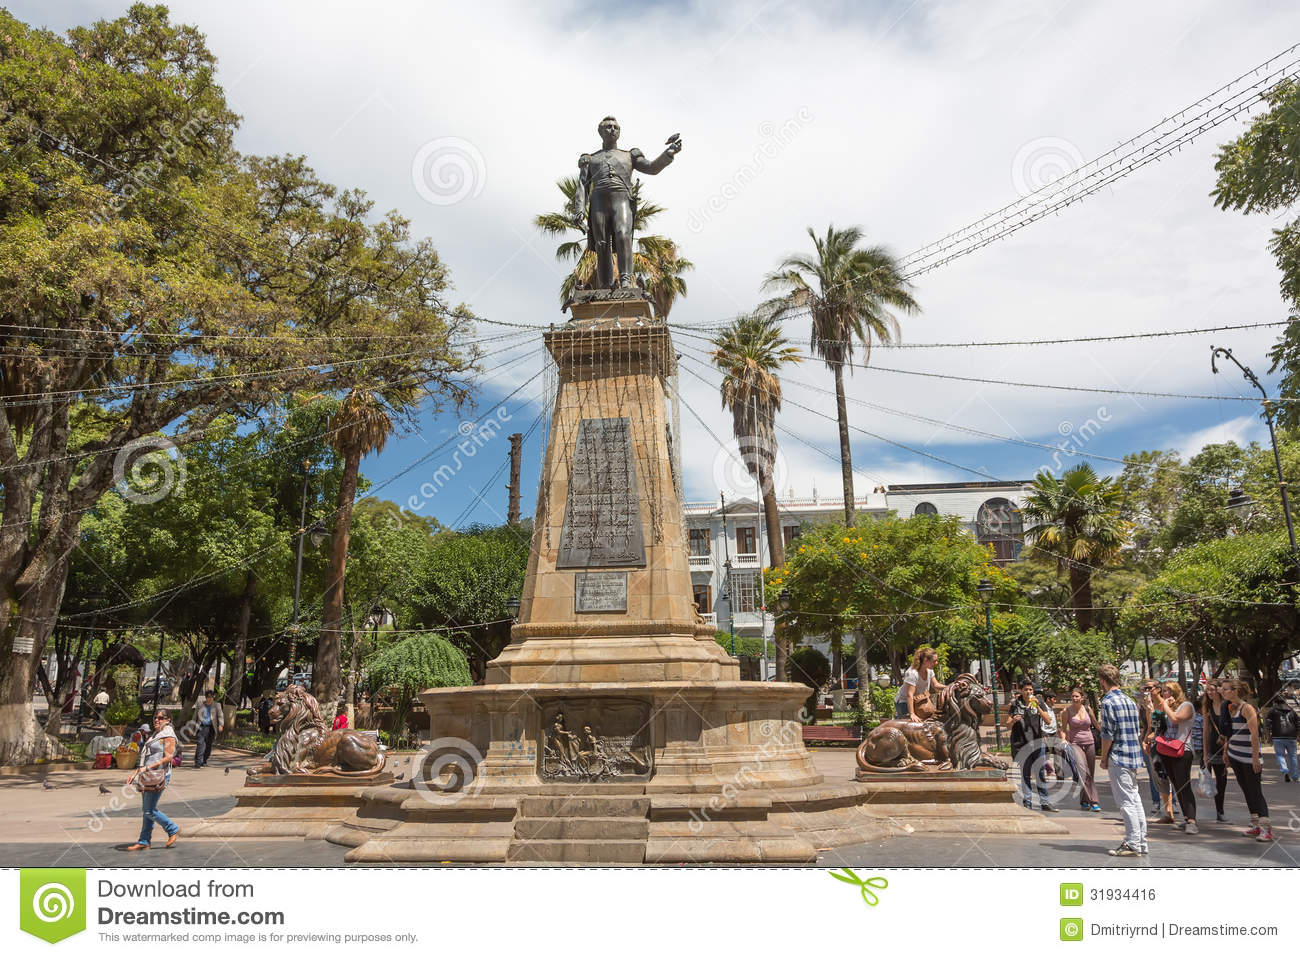 ... January 07, 2013. The monument is located on the main plaza of Sucre